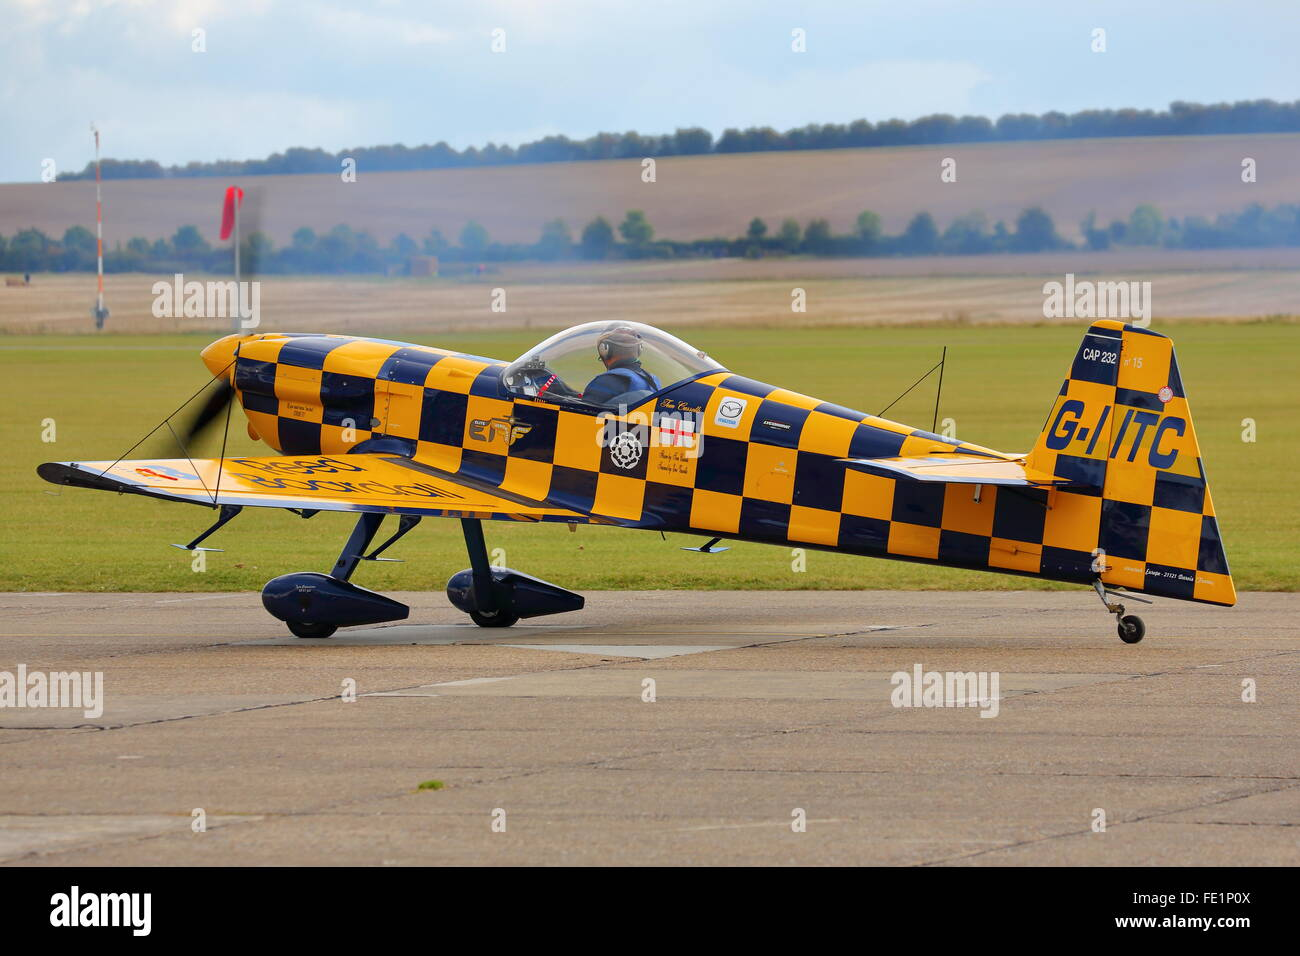 CAP Aviation CAP-232 G-IITC ready for takeoff at Duxford Air Show, Cambridge, UK - Stock Image